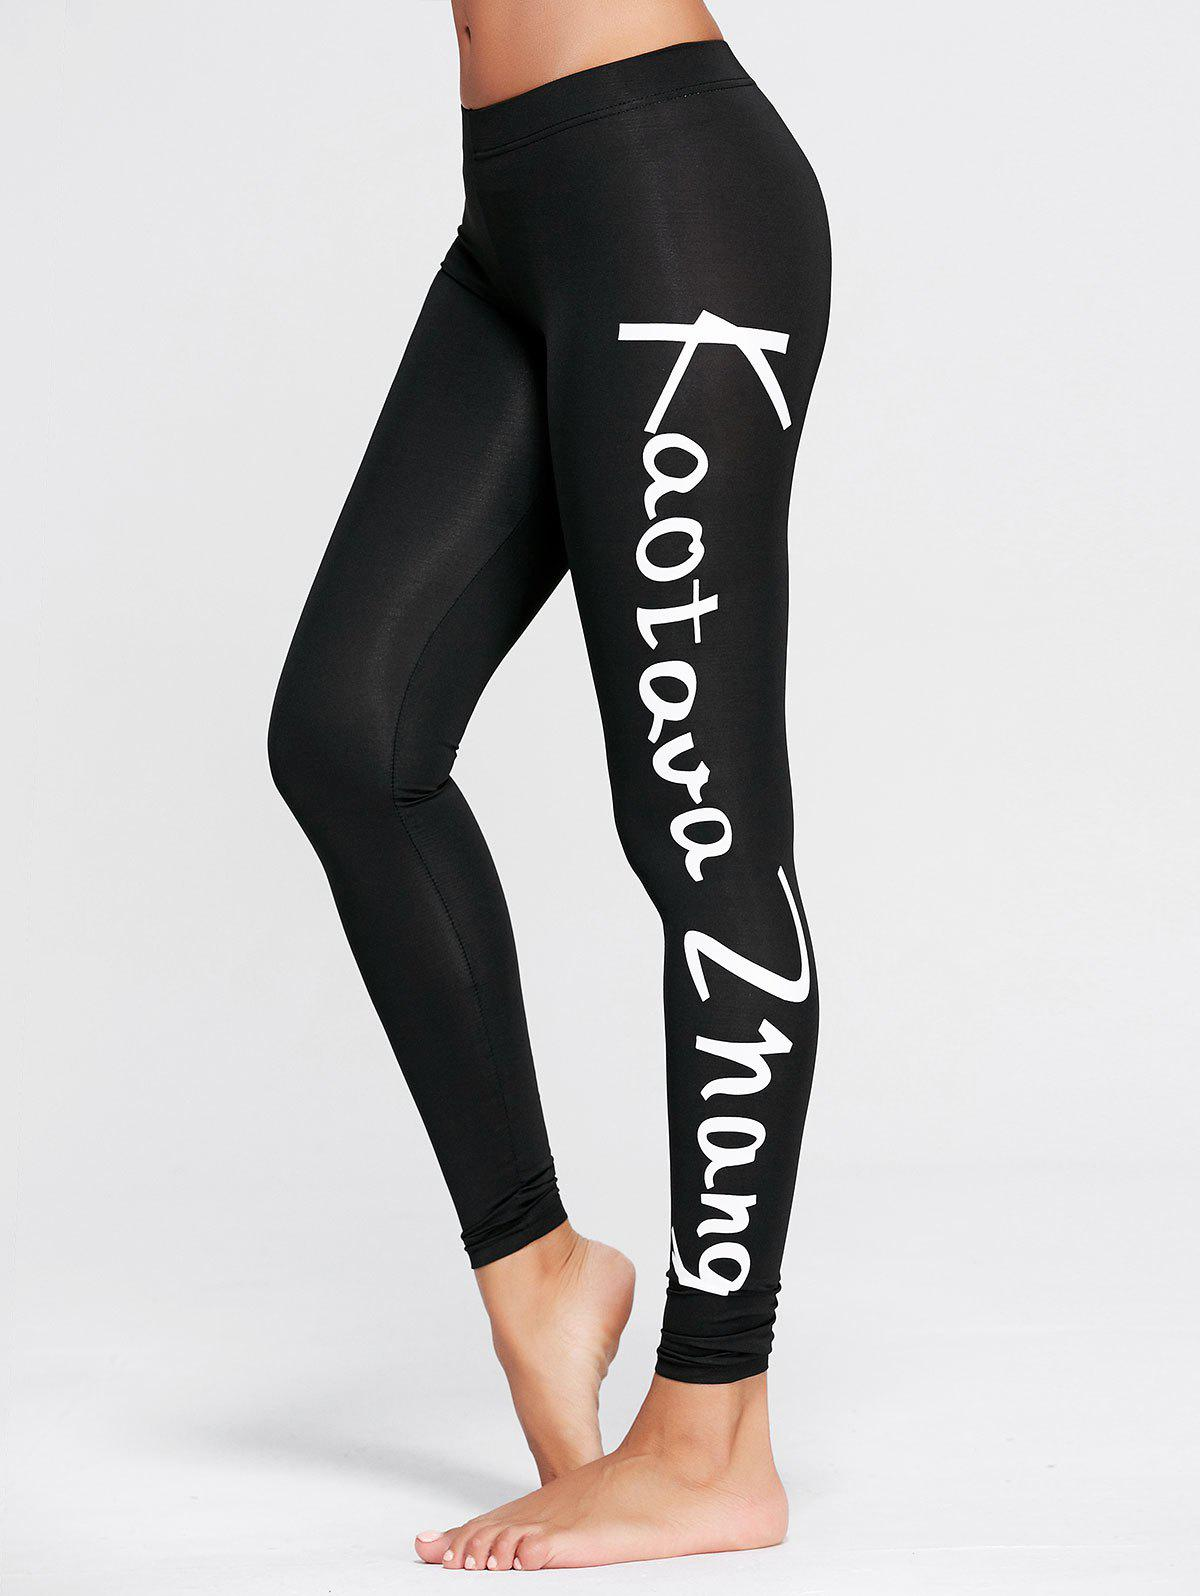 Words Graphic Sports Tall Leggings - BLACK S